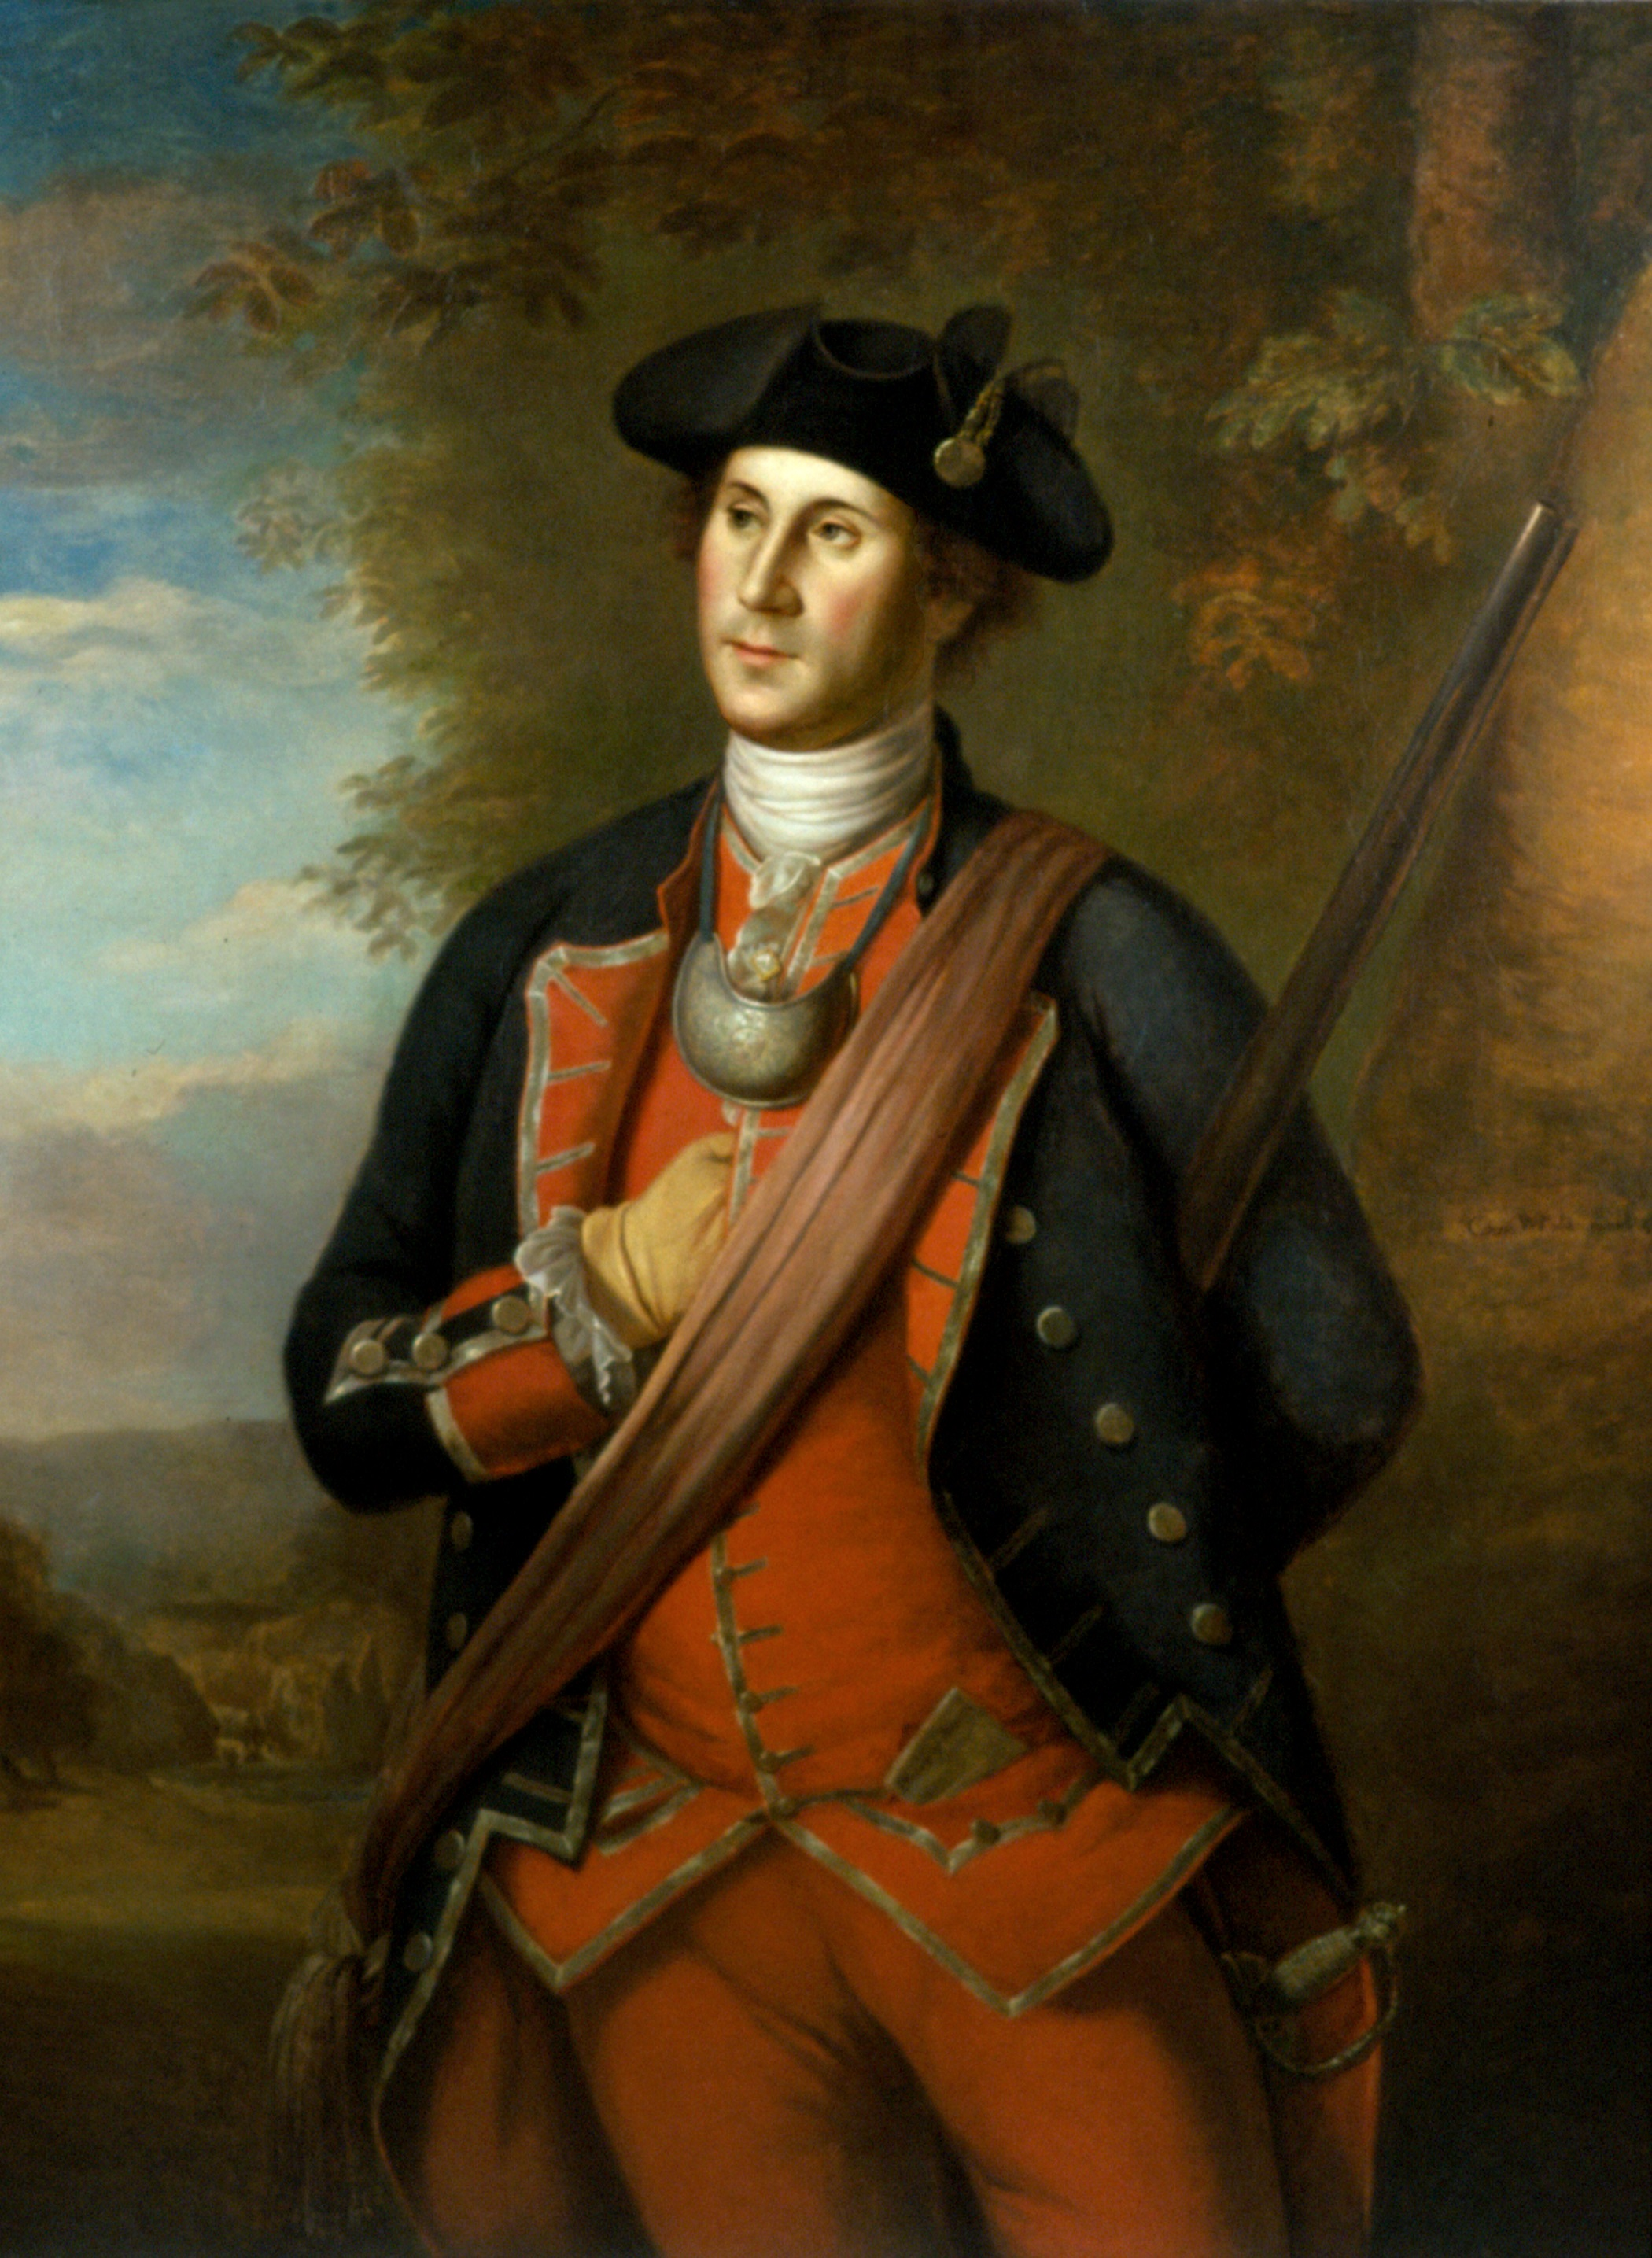 George Washington in the uniform of the Virginia Regiment, painted by Charles Willson Peale in 1772.